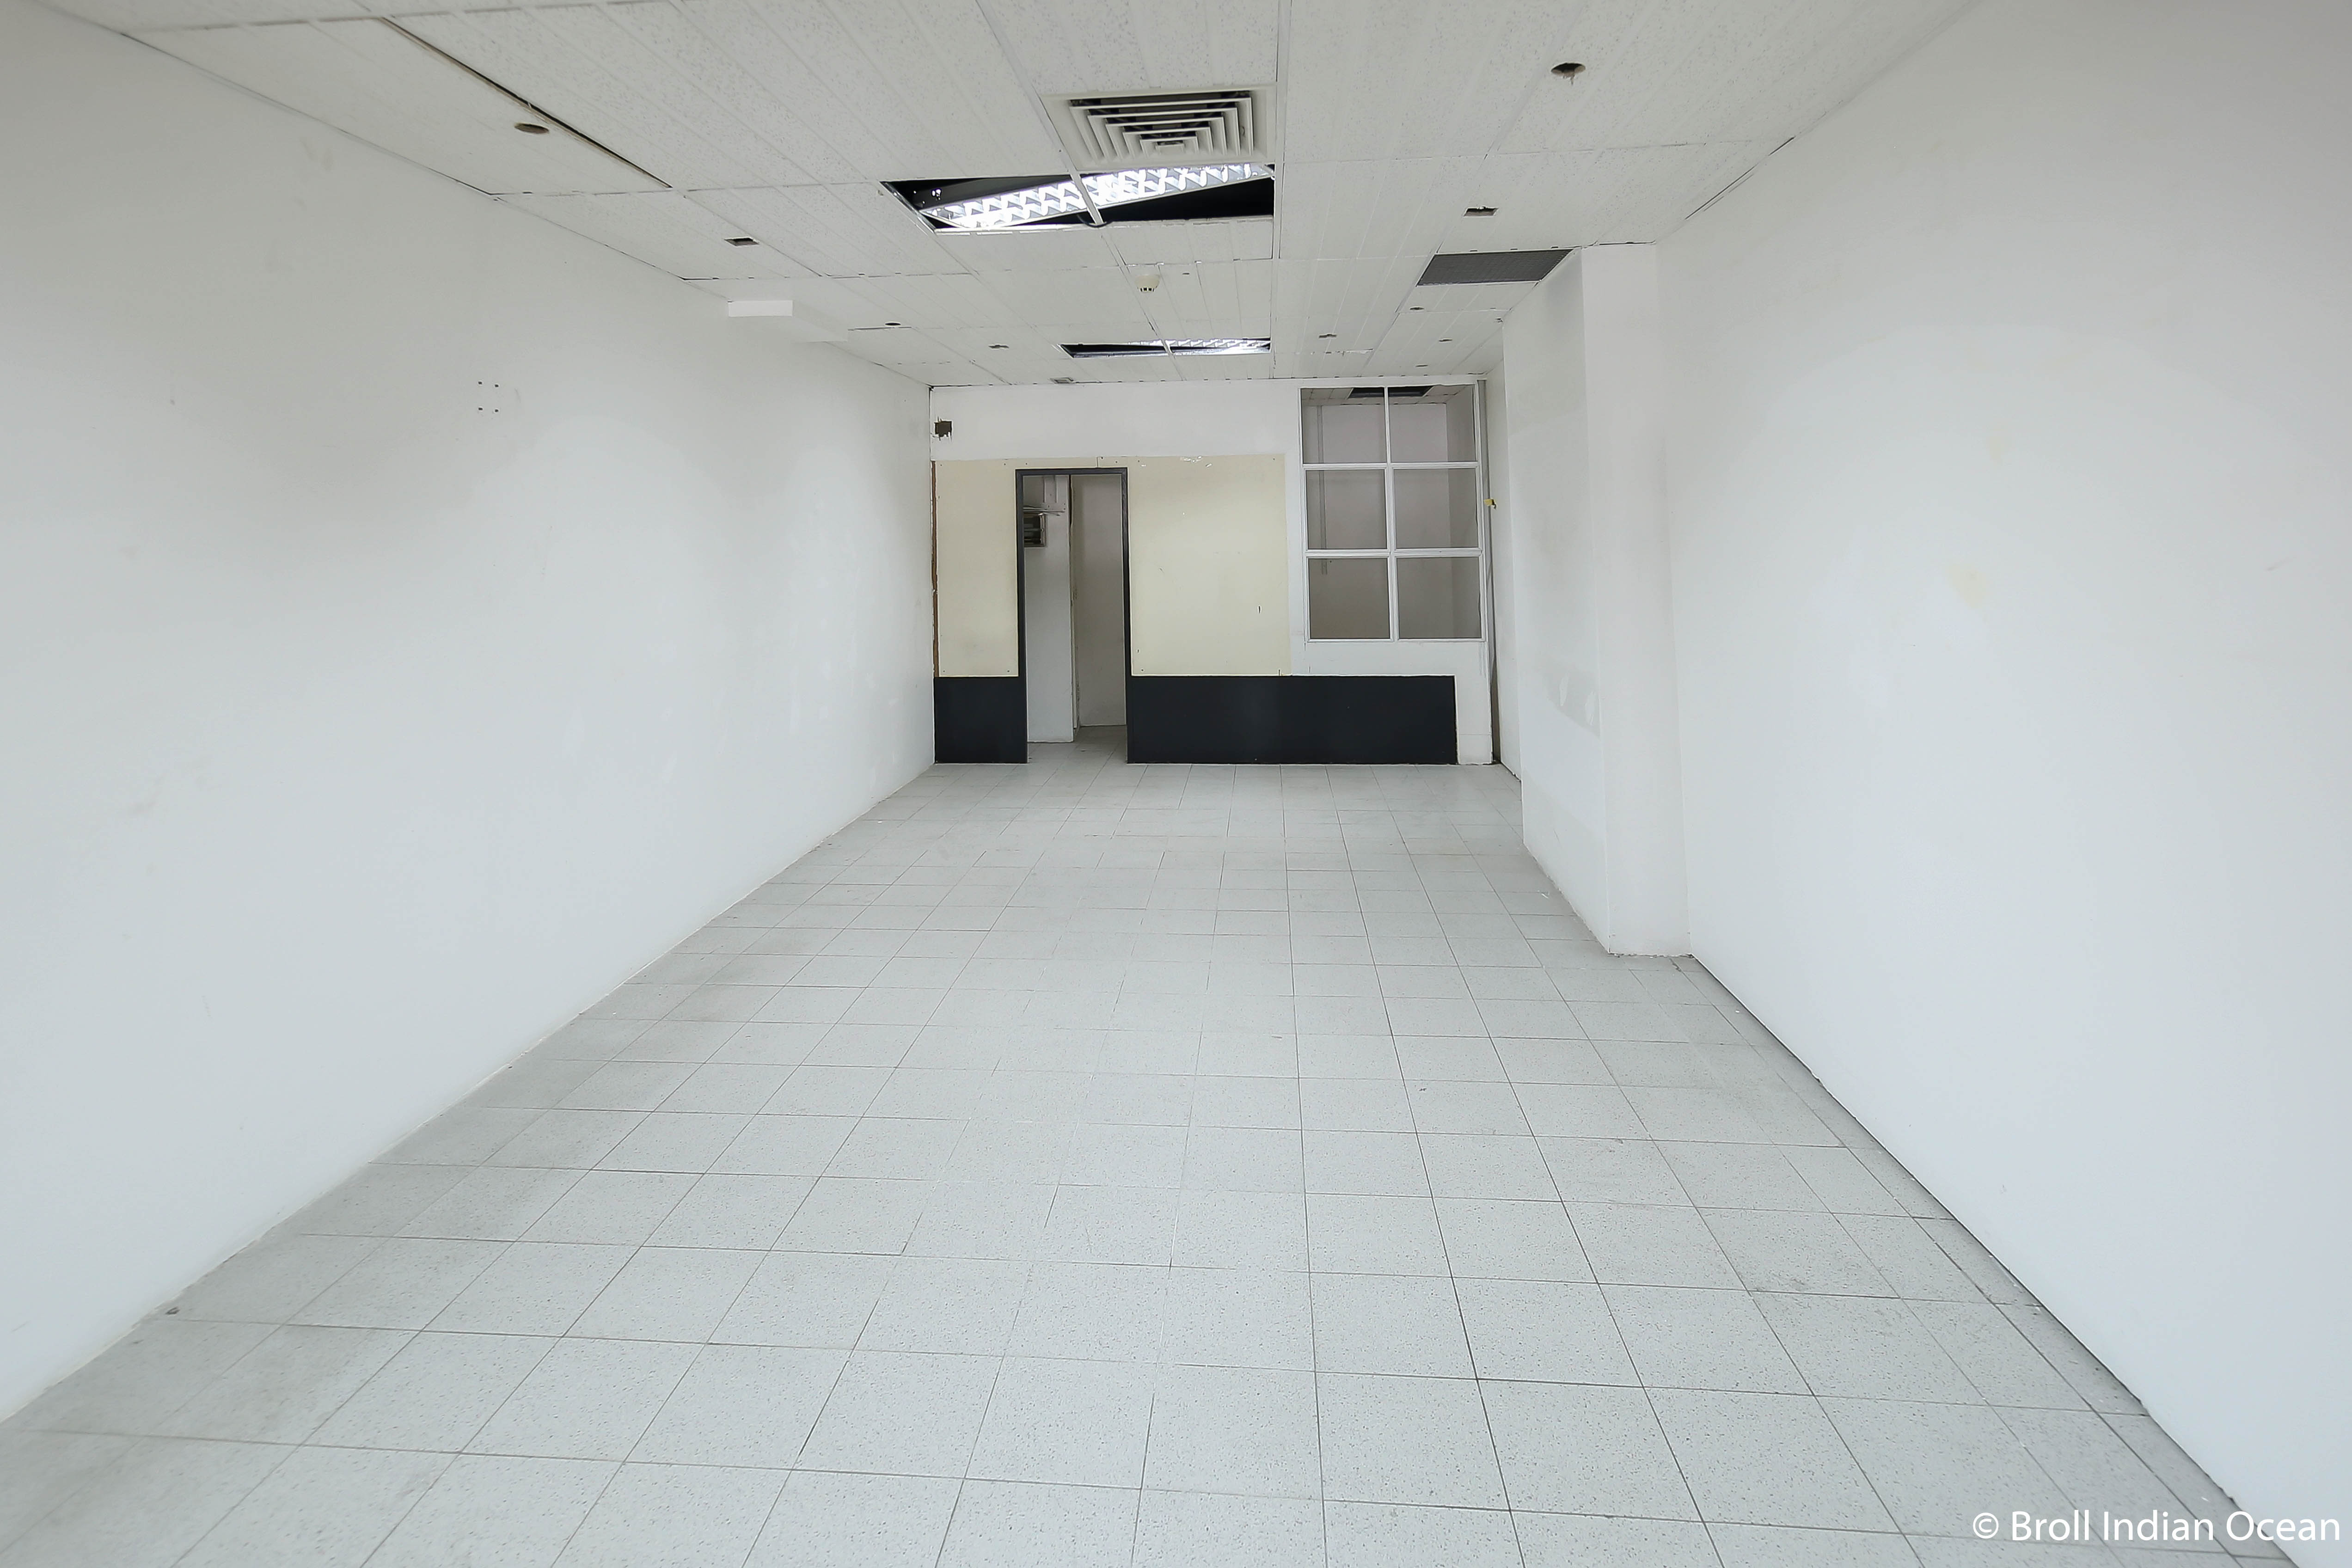 Commercial space for rent - Ground Floor - Happy World House - Retail space 1